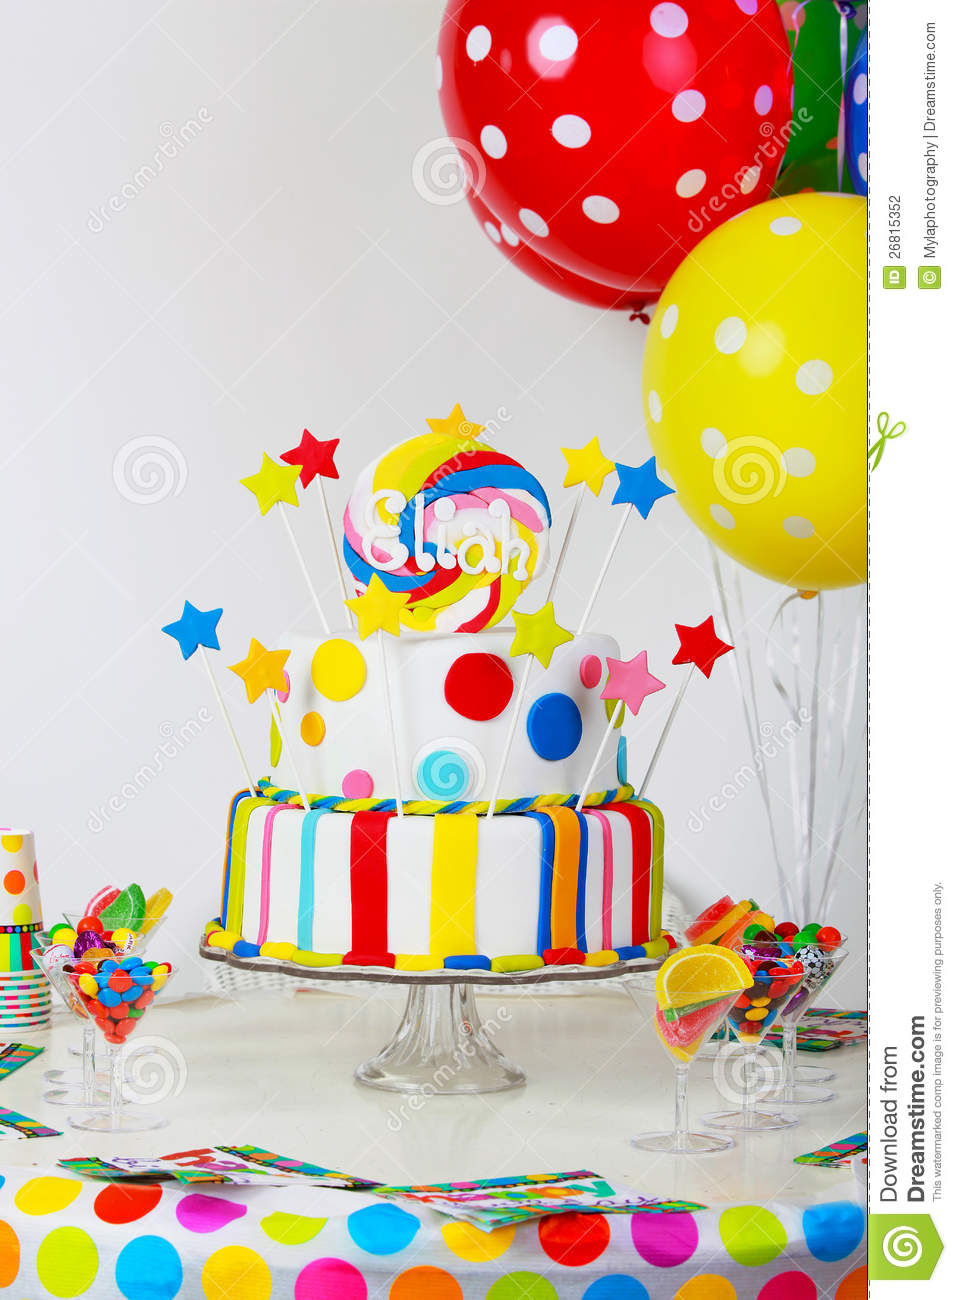 Formal Party Table Setting With Birthday Cake